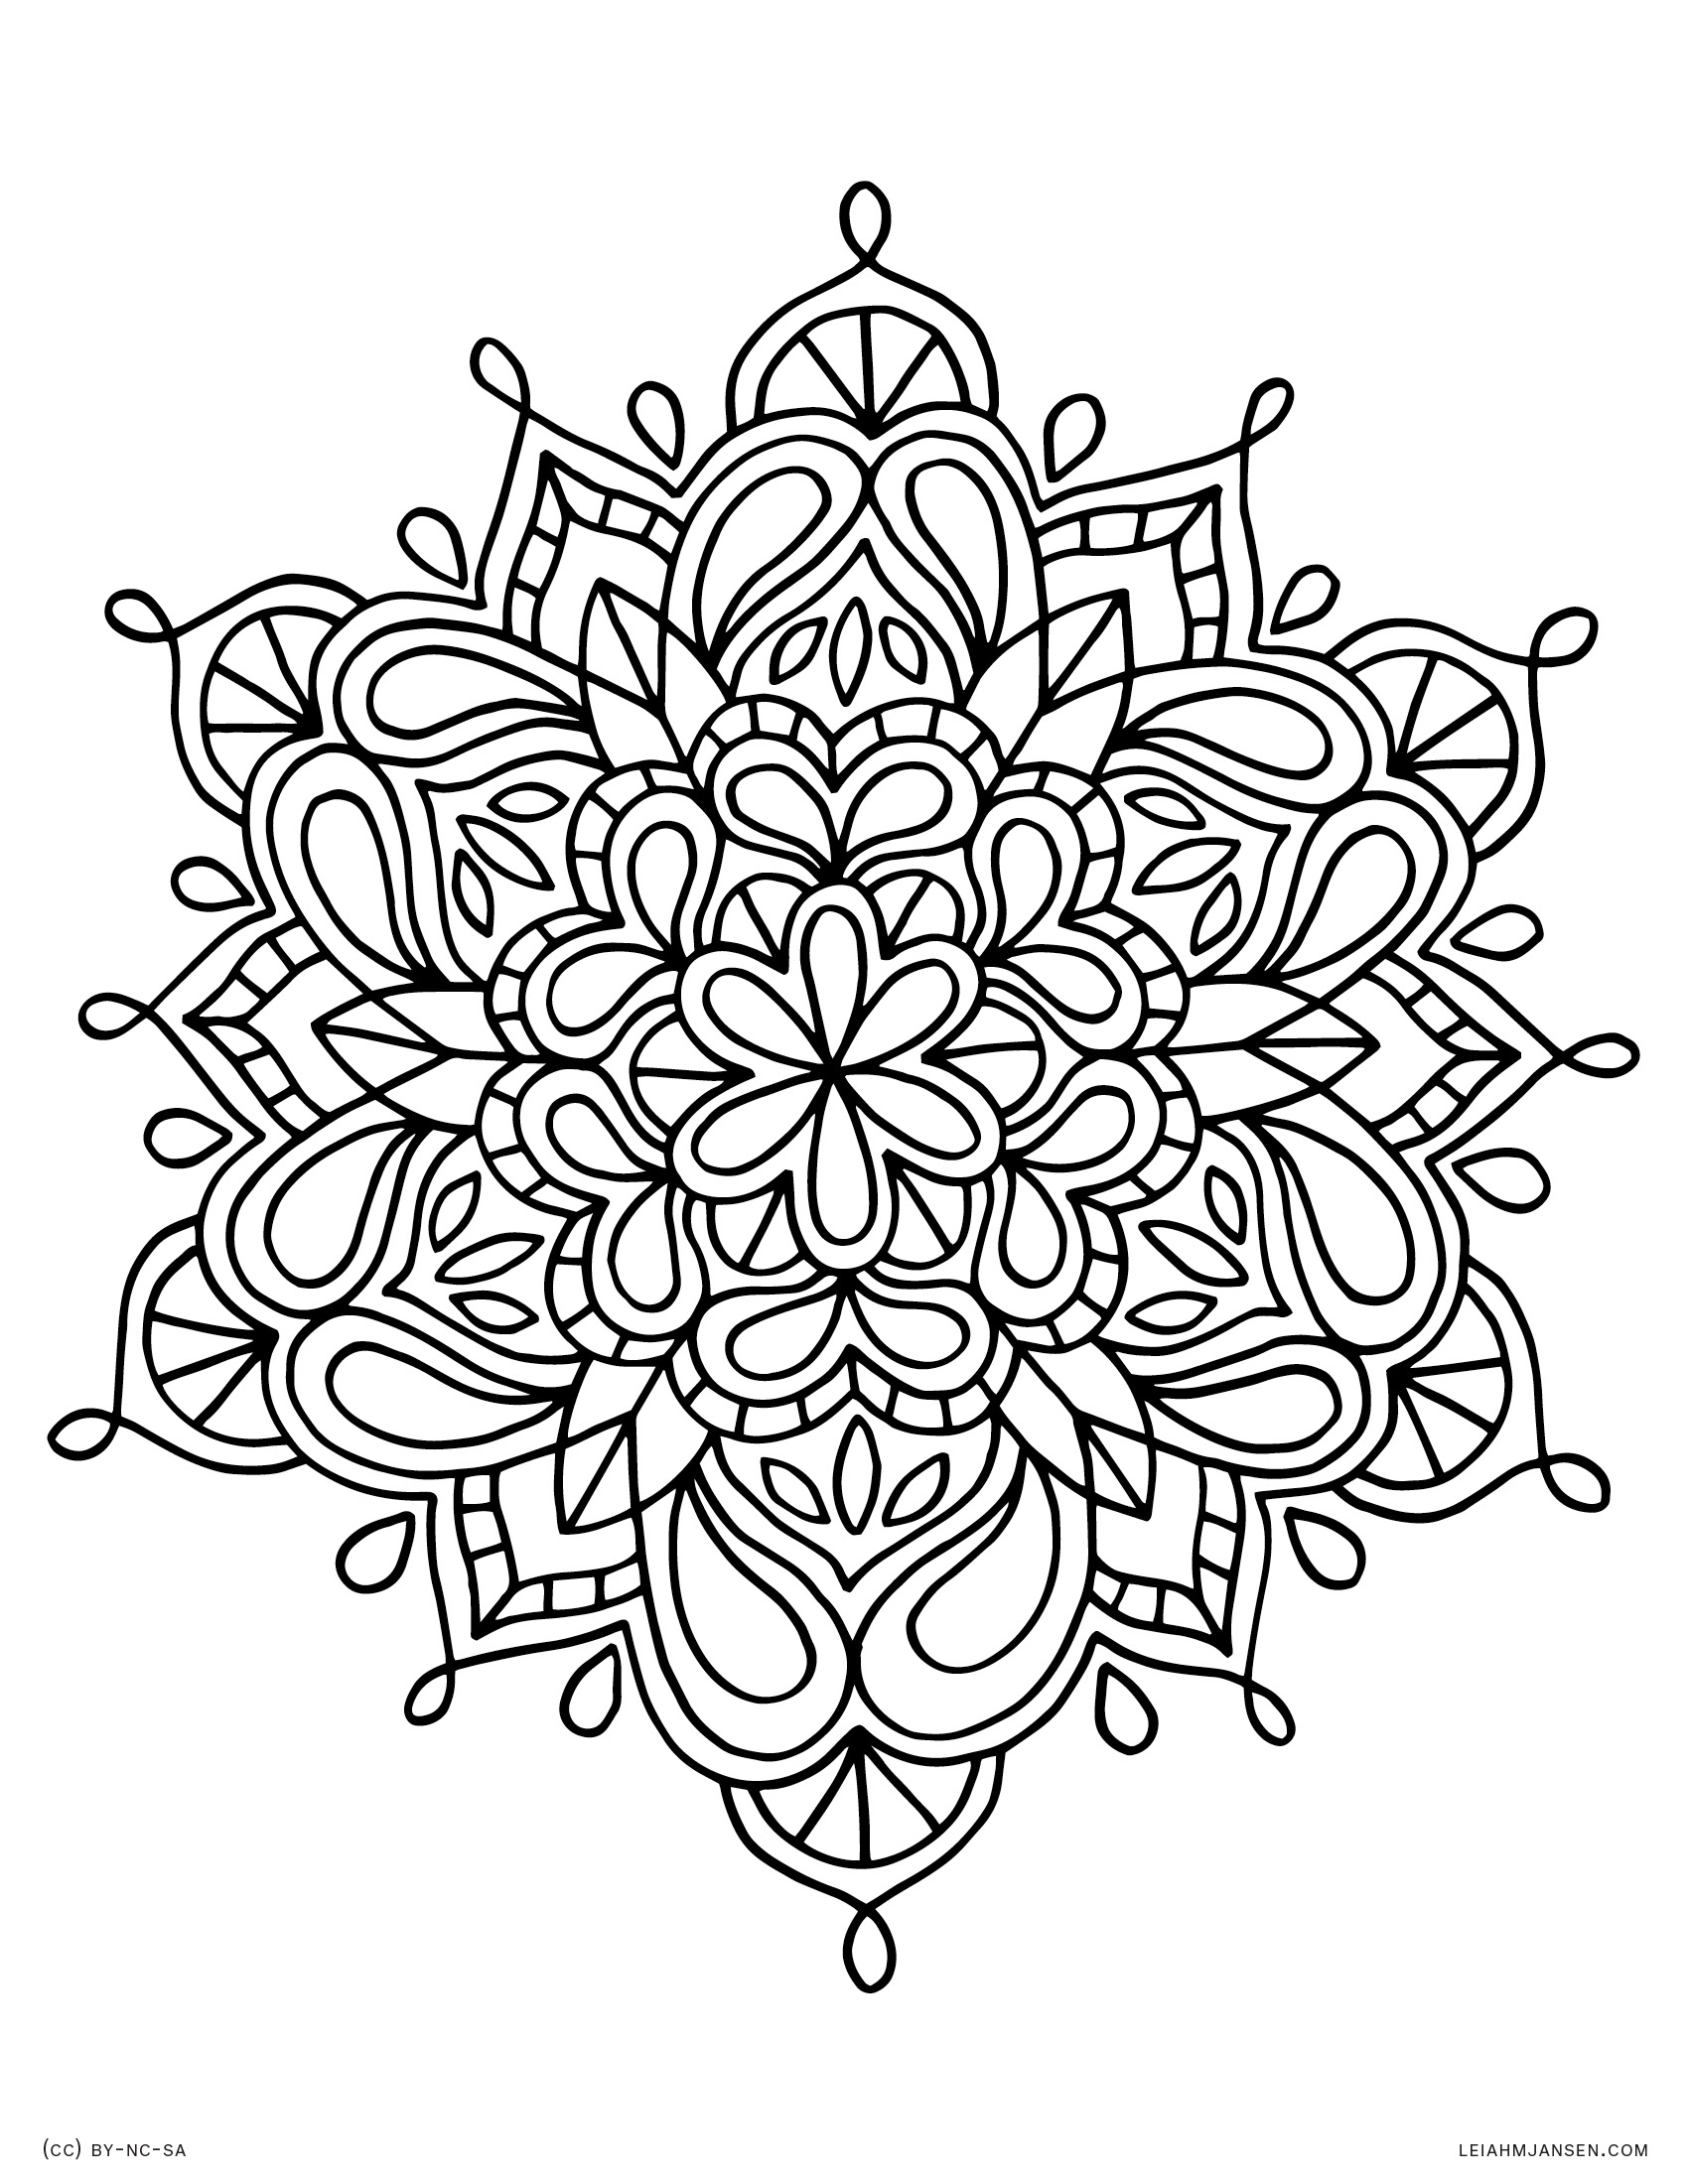 blank coloring pages coloring page for adults fashion coloring book adult blank coloring pages